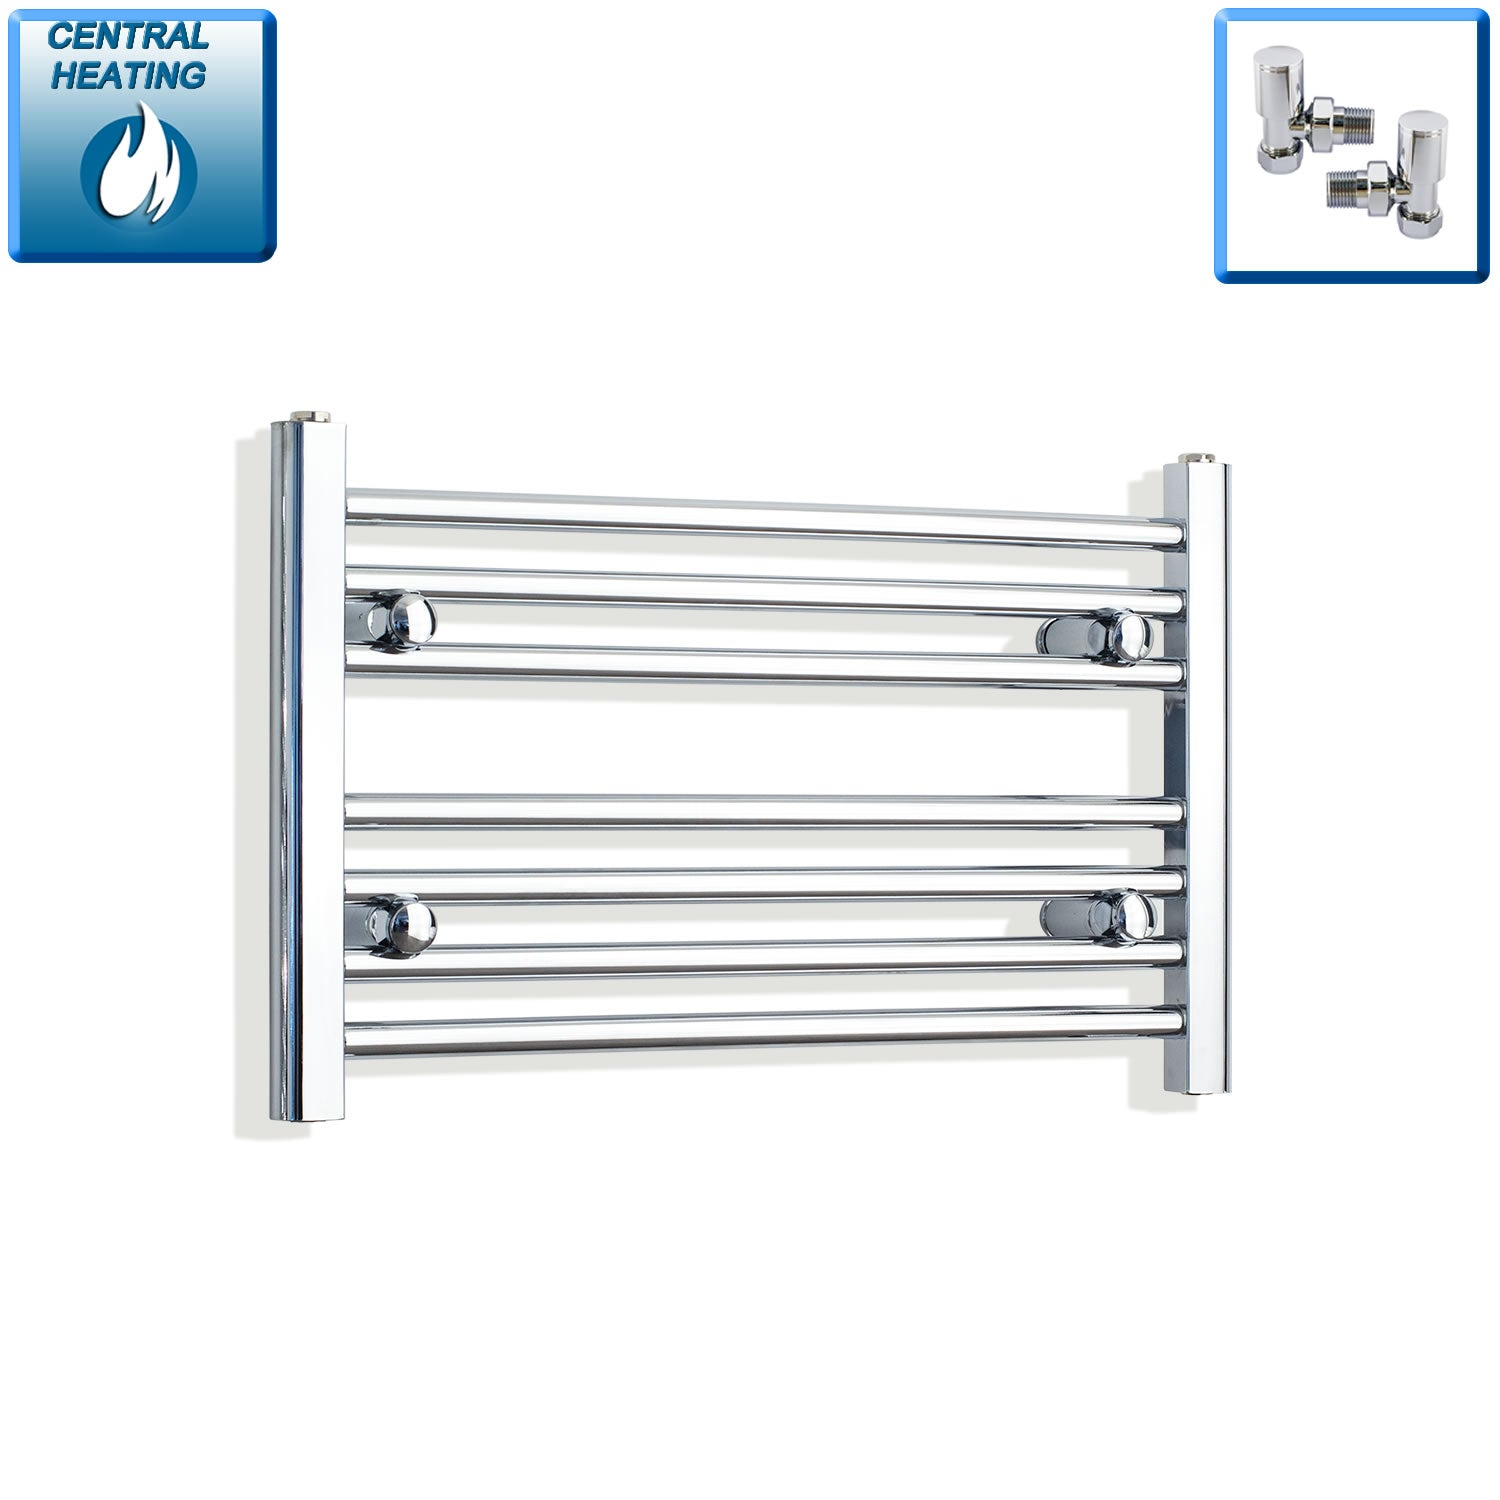 650mm Wide 400mm High Chrome Towel Rail Radiator With Angled Valve